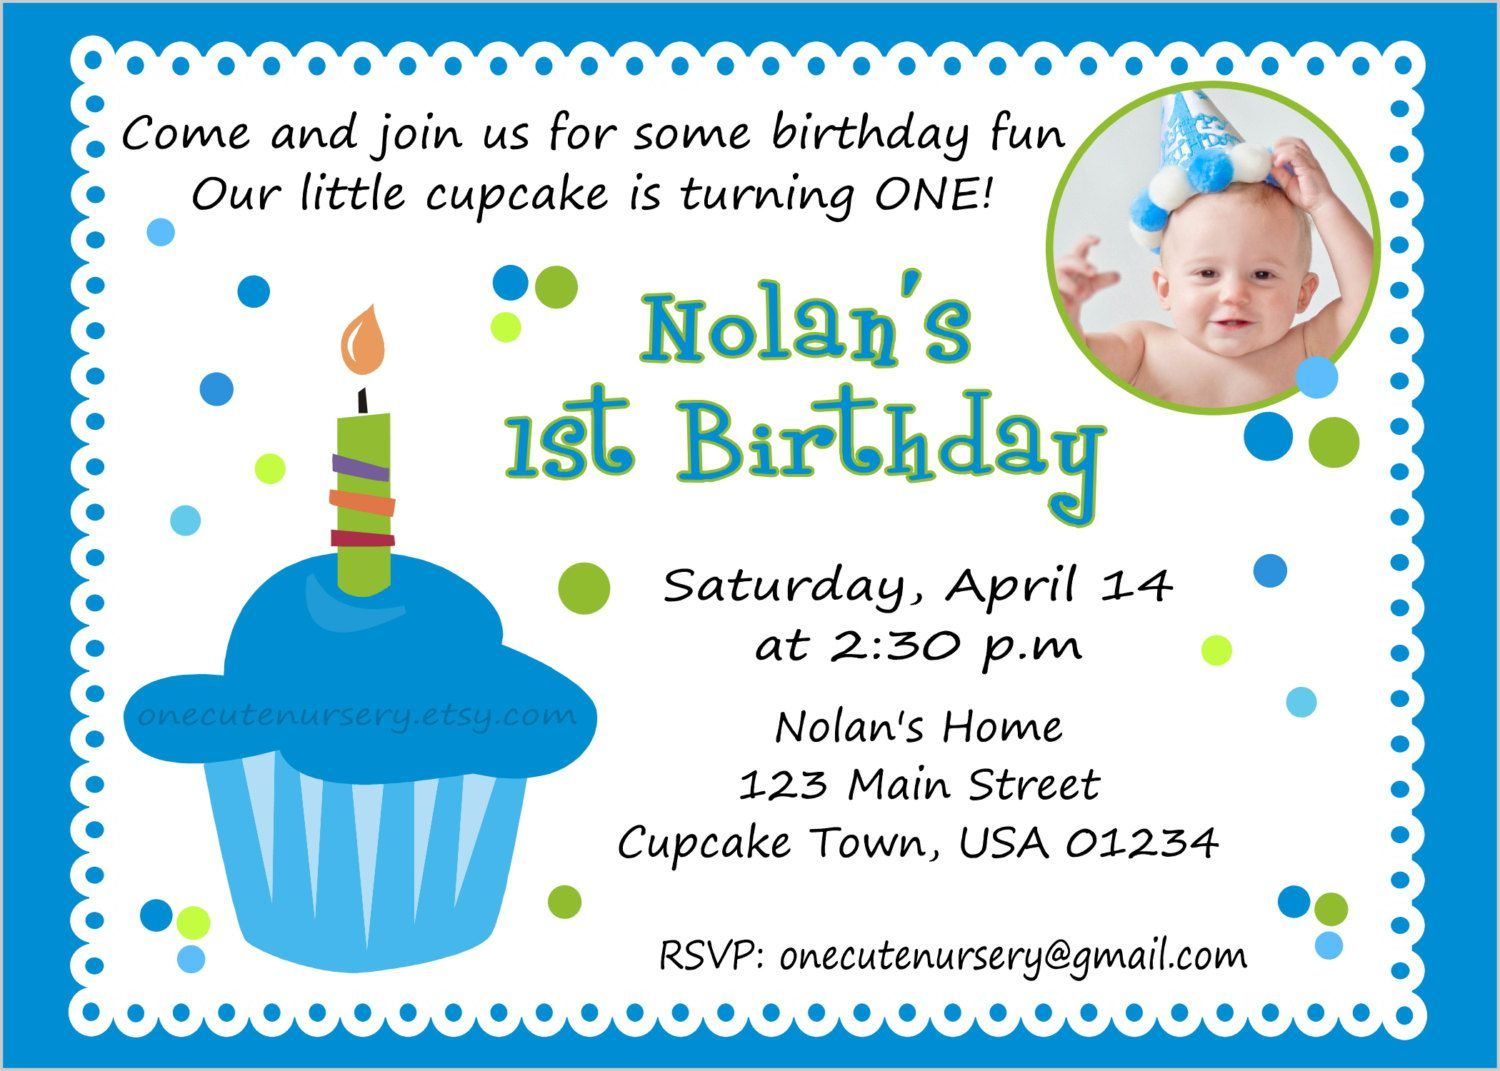 7th birthday invitation wording boy birthday invitations template 7th birthday invitation wording boy stopboris Choice Image